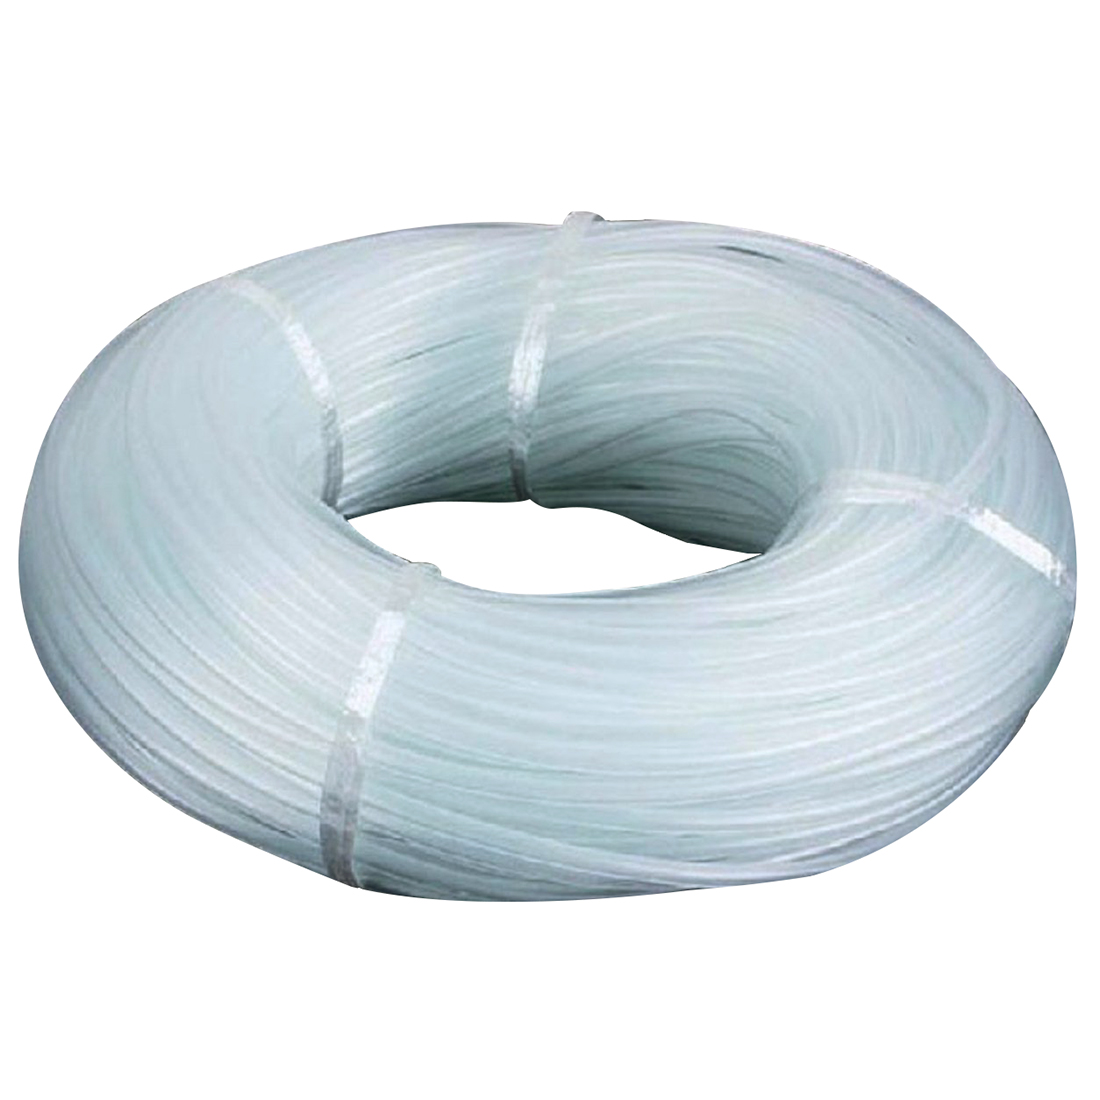 AIMA 4 * 6 mm Oxygen Pump Hose for Air Bubble Stone r Aquarium Fishbowl Pond Pump White